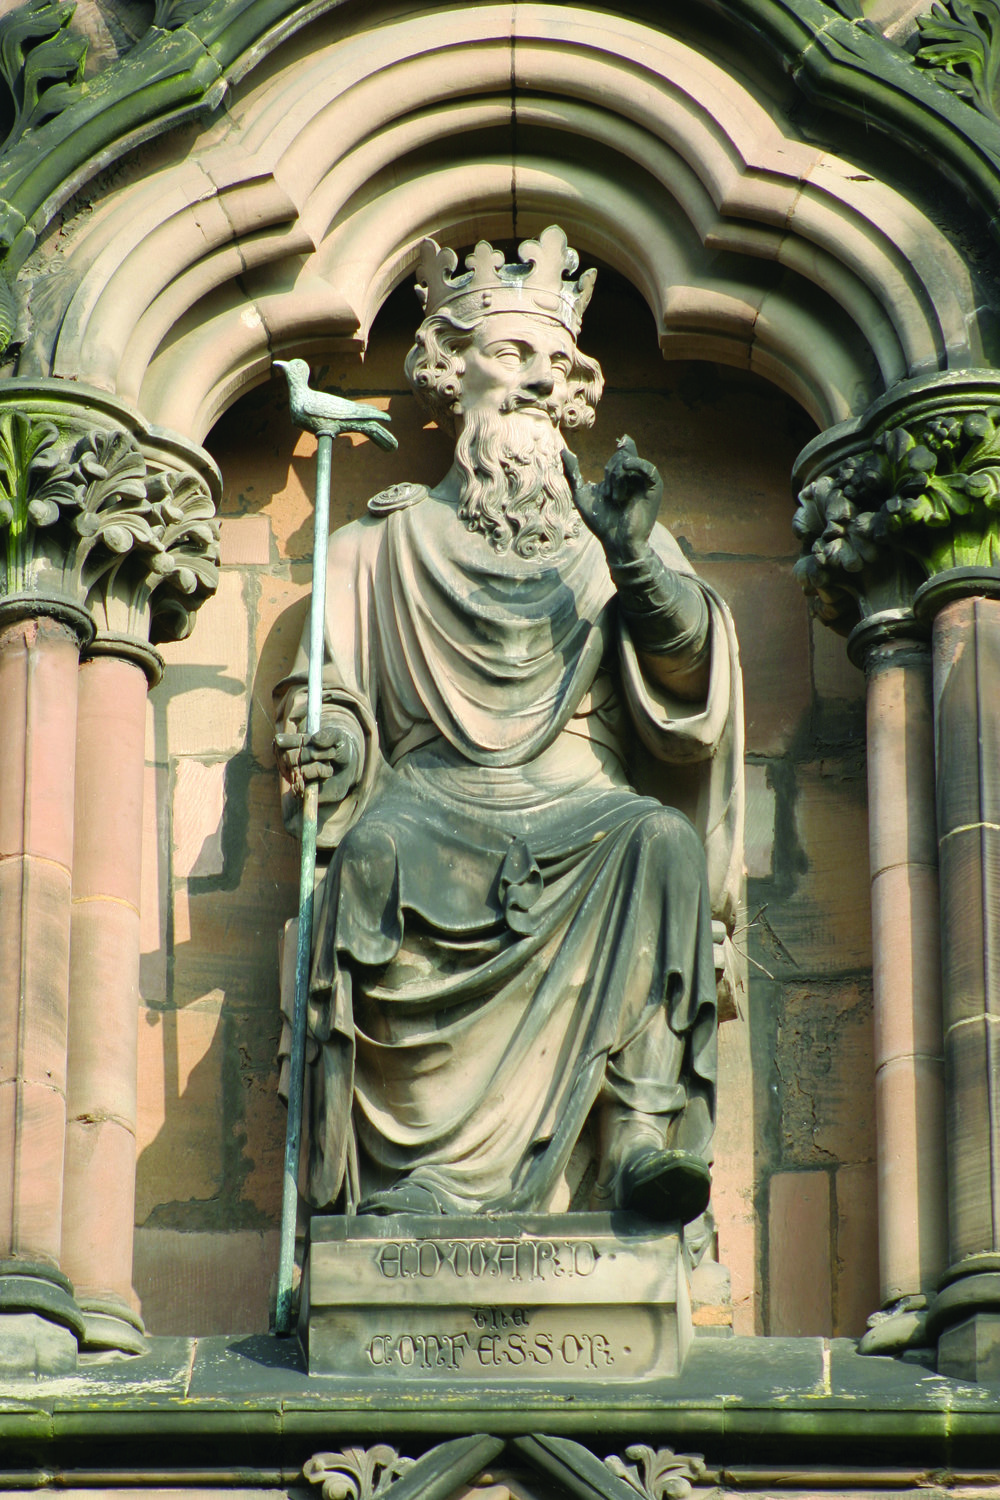 A stone statue of Edward the Confessor as found on Lichfield Cathedral. A.C.Jones / Shutterstock.com